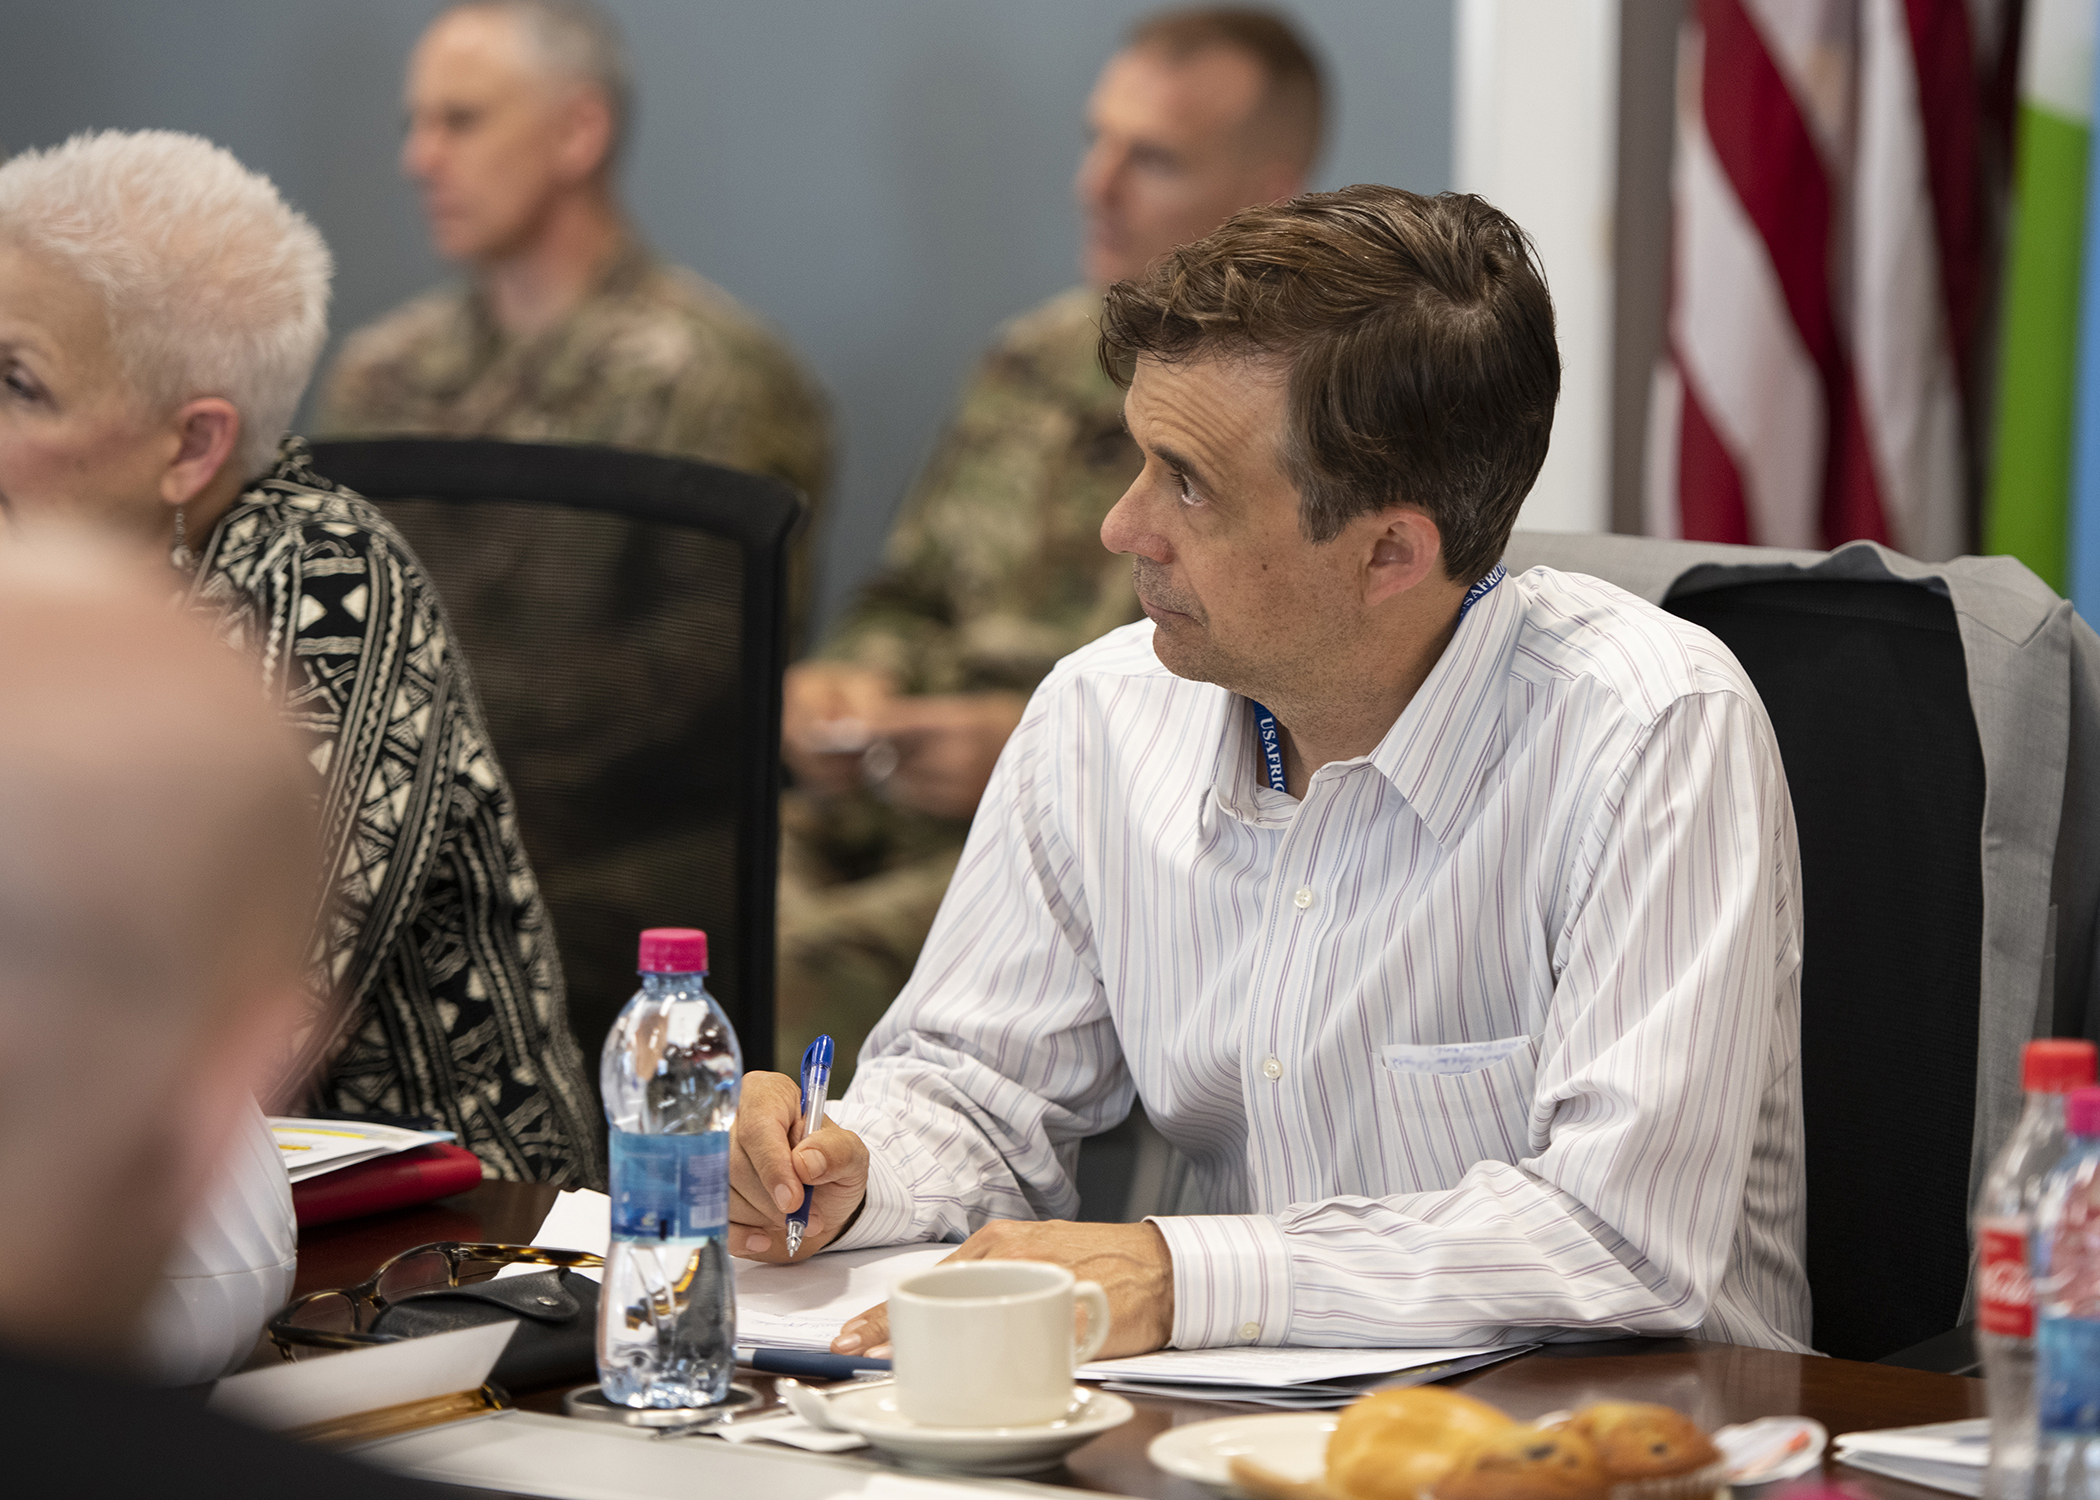 "Amb. Peter Vrooman, U.S. Ambassador to Rwanda, listens to a briefing titled ""Triggers of Regional Instability"" during the Combined Joint Task Force-Horn of Africa (CJTF-HOA) East Africa Security Forum (EASF) at Camp Lemonnier, Djibouti, Dec. 11, 2018. The EASF is an annual opportunity for CJTF-HOA and interagency leaders to sync, assess and align efforts to develop synchronized courses of action that support common goals. (U.S. Air Force photo by Tech. Sgt. Shawn Nickel)"